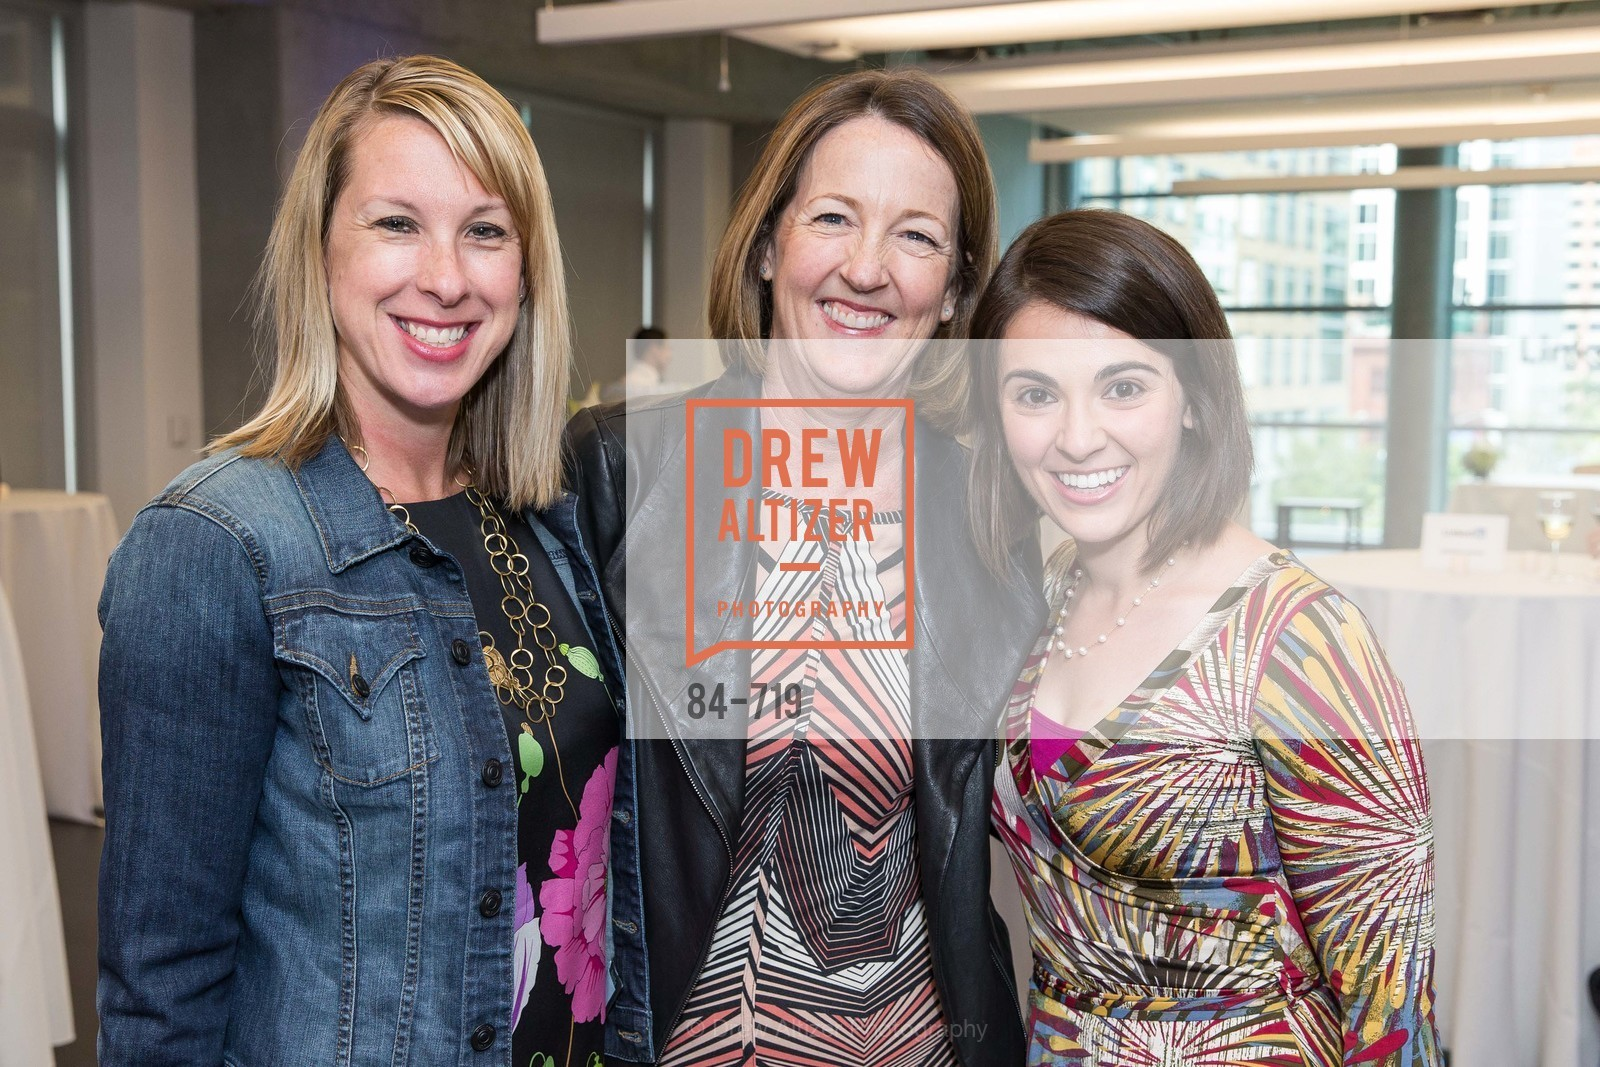 Shannon Stubo, Laura Davenport, Emilia Shapiro, THE LINKEDIN Discussion Series featuring Jack and Suzy Welch with LinkedIn Executive Editor Dan Roth, US, May 12th, 2015,Drew Altizer, Drew Altizer Photography, full-service agency, private events, San Francisco photographer, photographer california